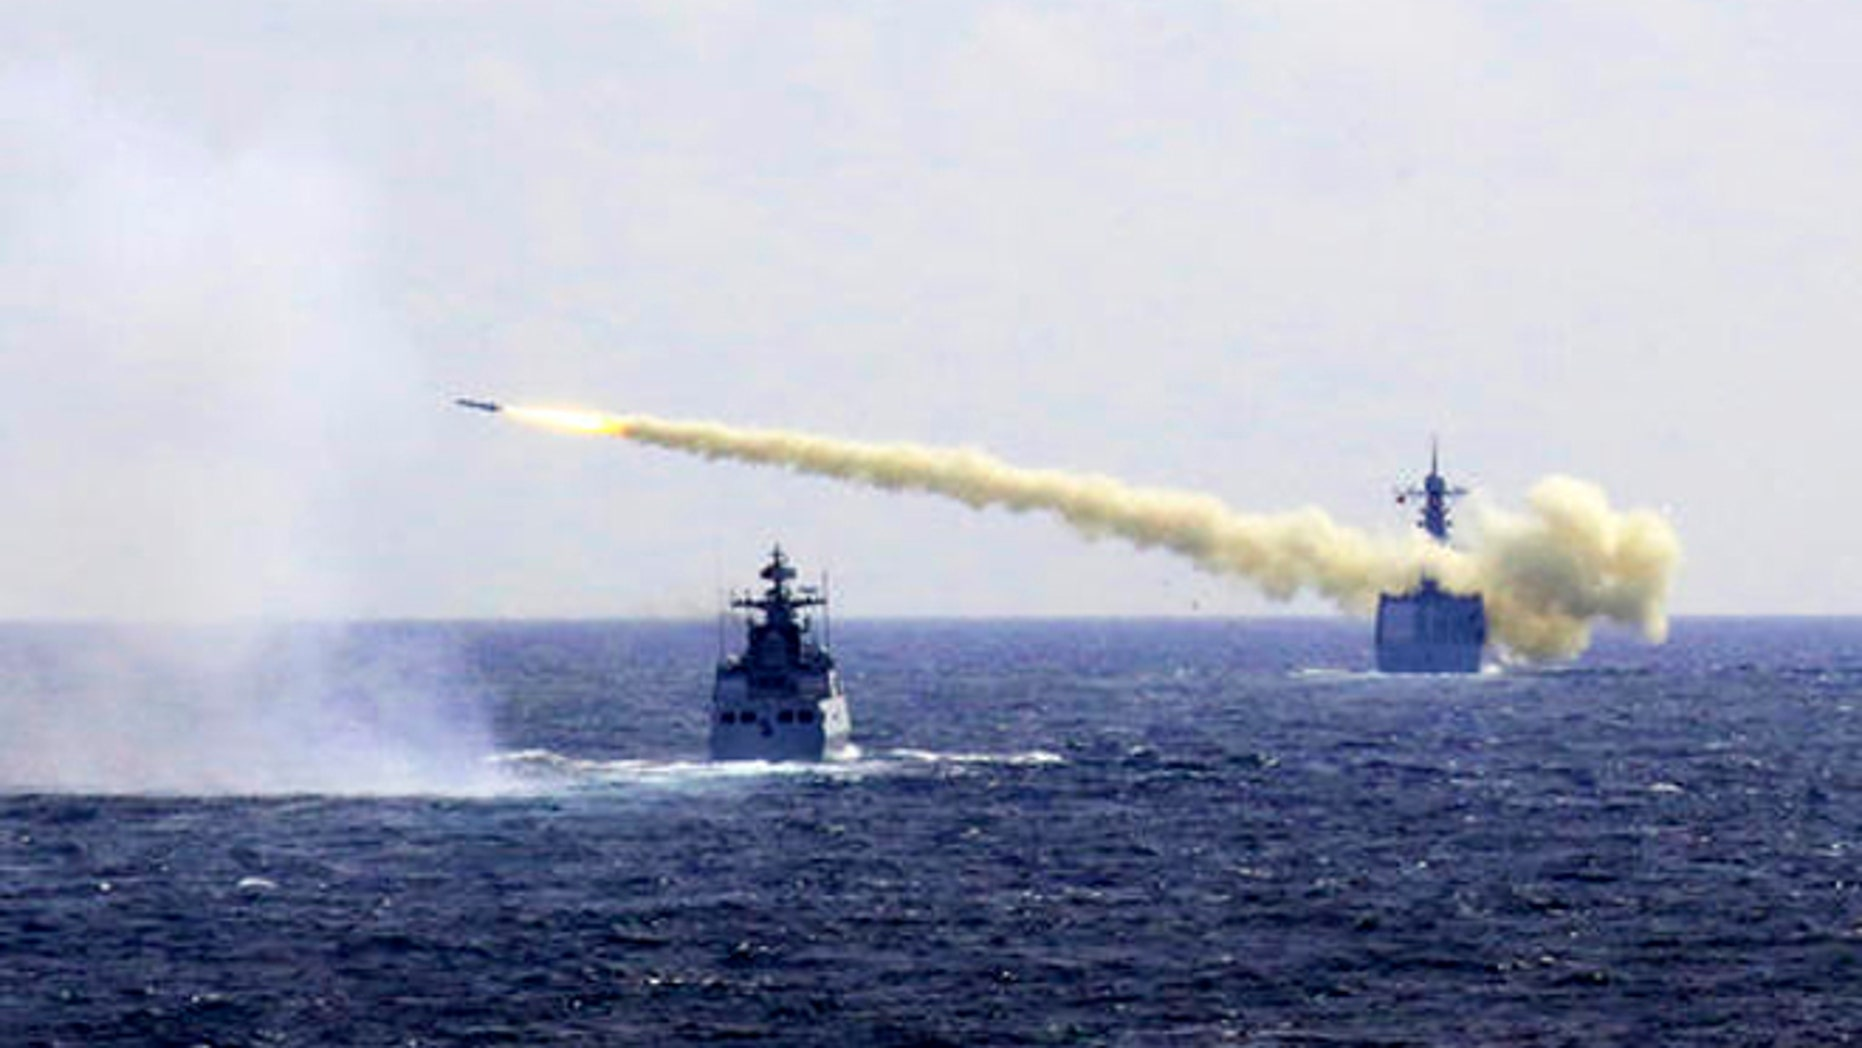 In this Monday, Aug. 1, 2016 photo released by Xinhua News Agency, a missile is launched from a navy ship during a live ammunition drill in the East China Sea. (Associated Press)